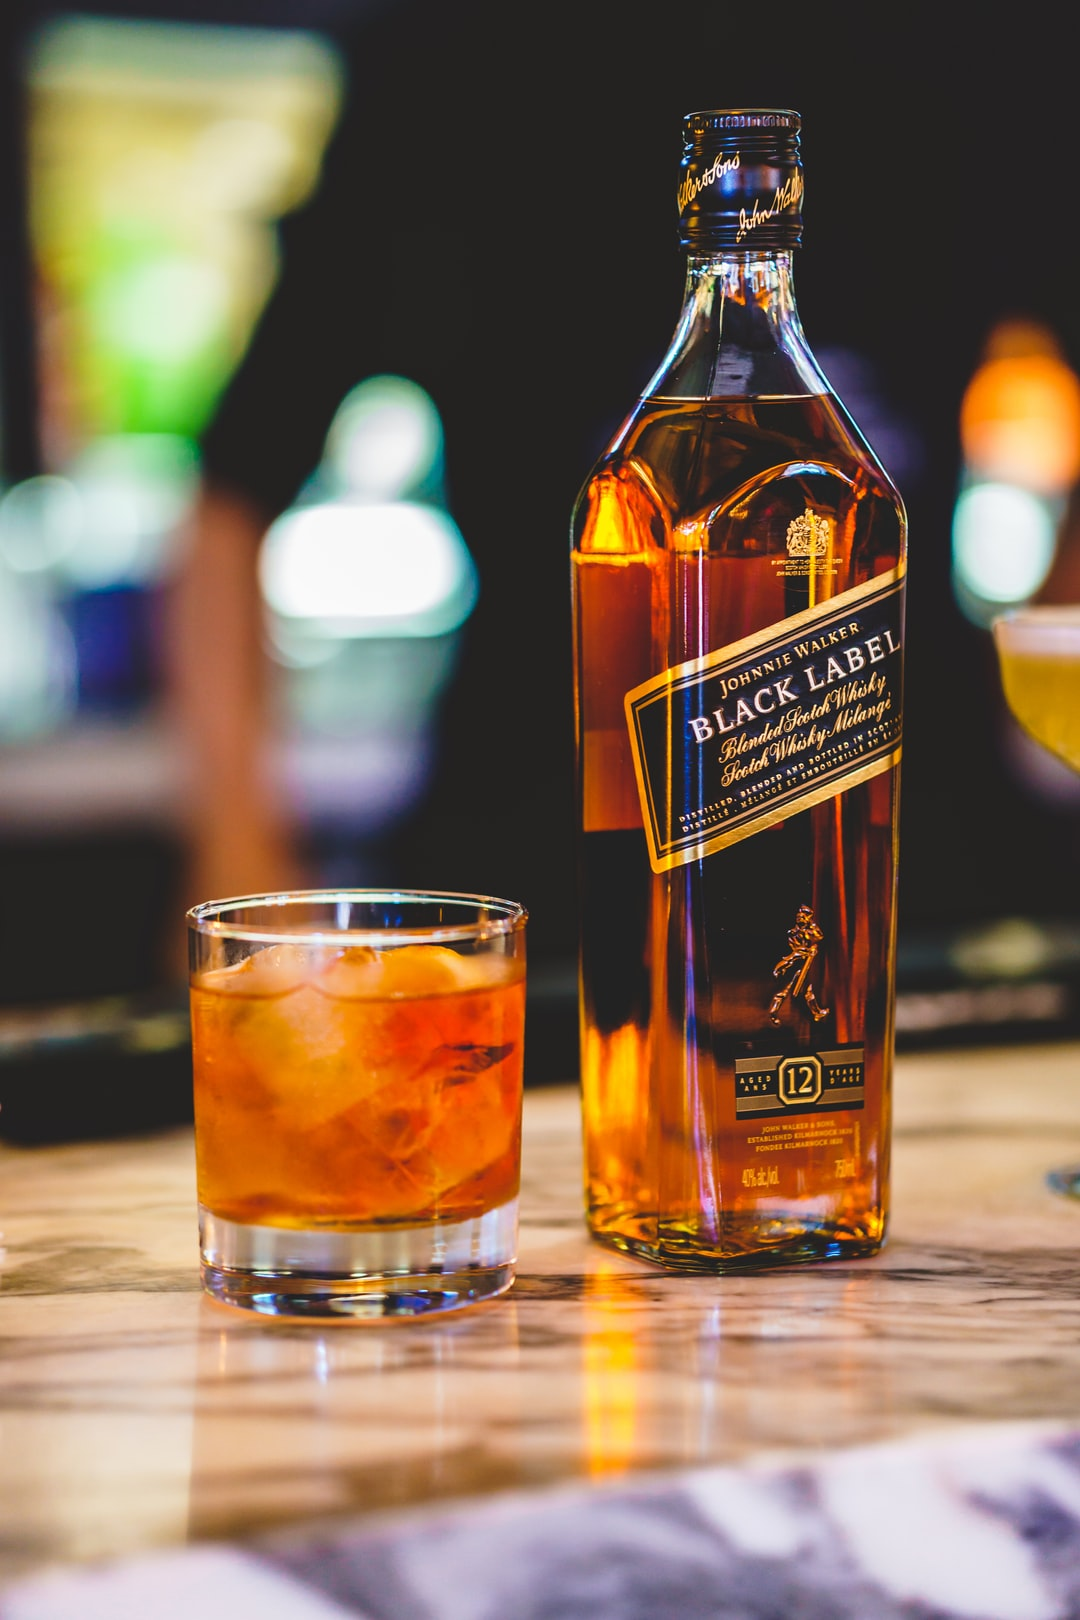 500 Whisky Pictures Hd Download Free Images On Unsplash